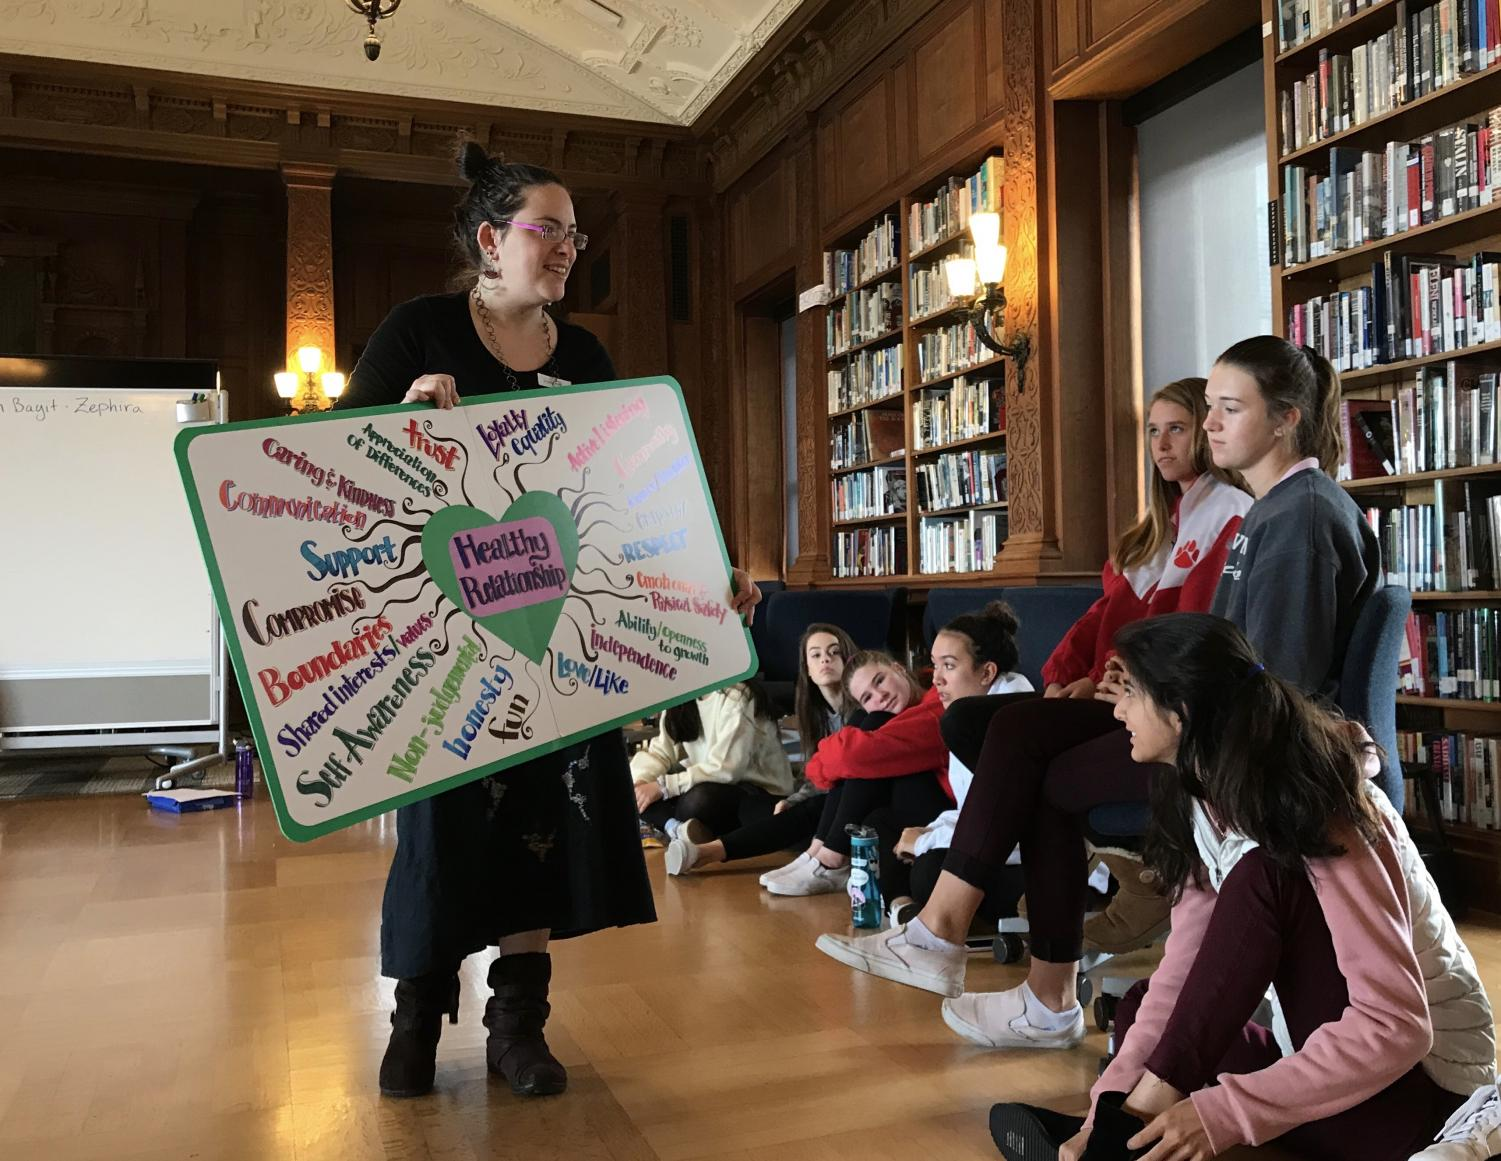 Sophomores read off a map of common qualities that people want in healthy relationships. The map was designed by a Trader Joe's graphic artist.